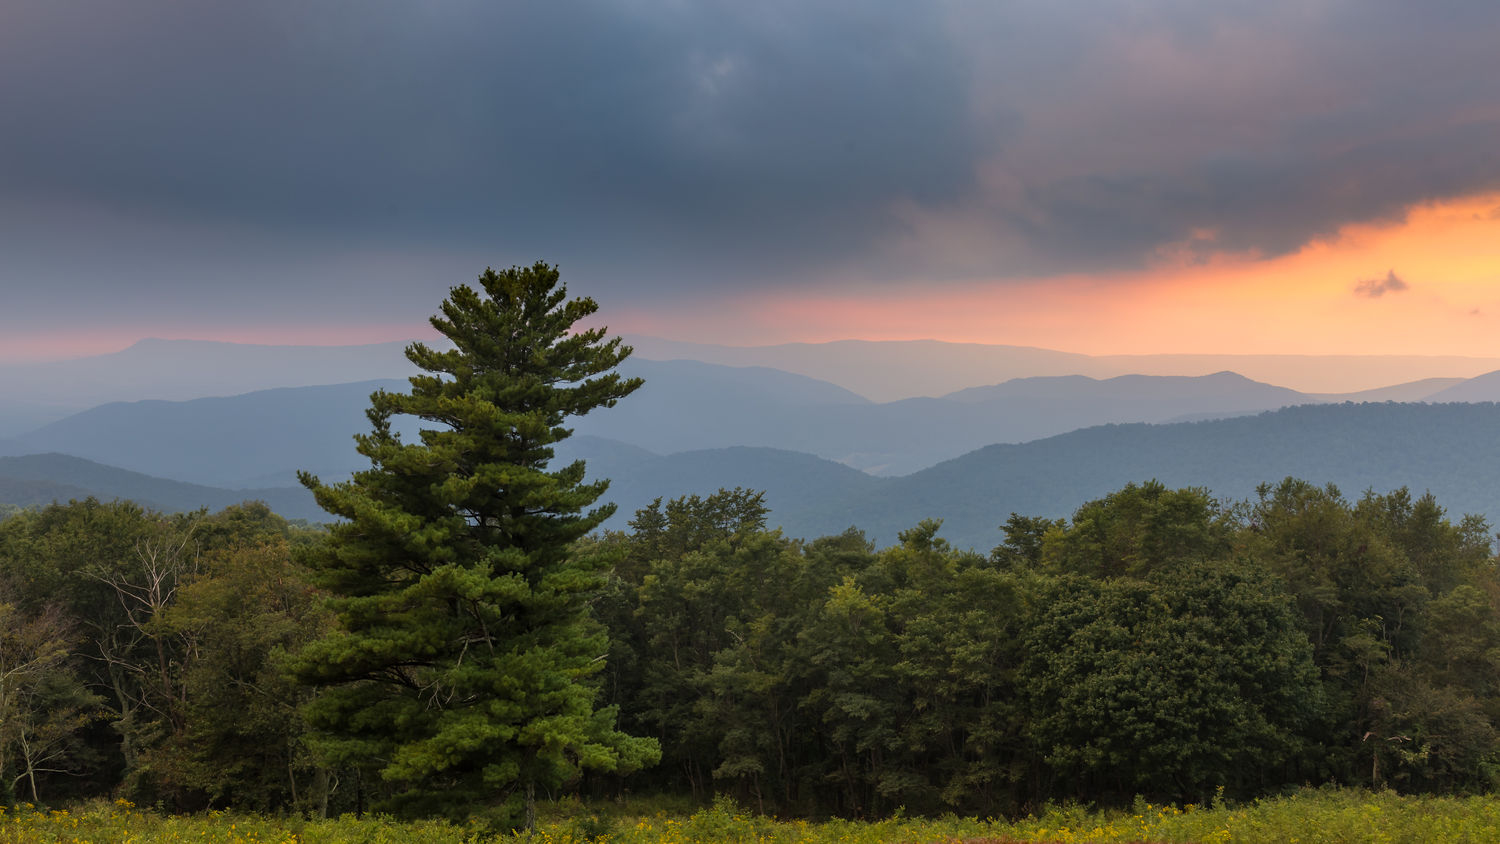 Cloudy sunset from Hazeltop Ridge in Shenandoah National Park Environmental Conservation Forest Landscape Mountain Mountain Peak Mountain Range Nature No People Outdoors Park Pine Tree Shenandoah National Park Sky Sunset Tree Tree Area Treetop